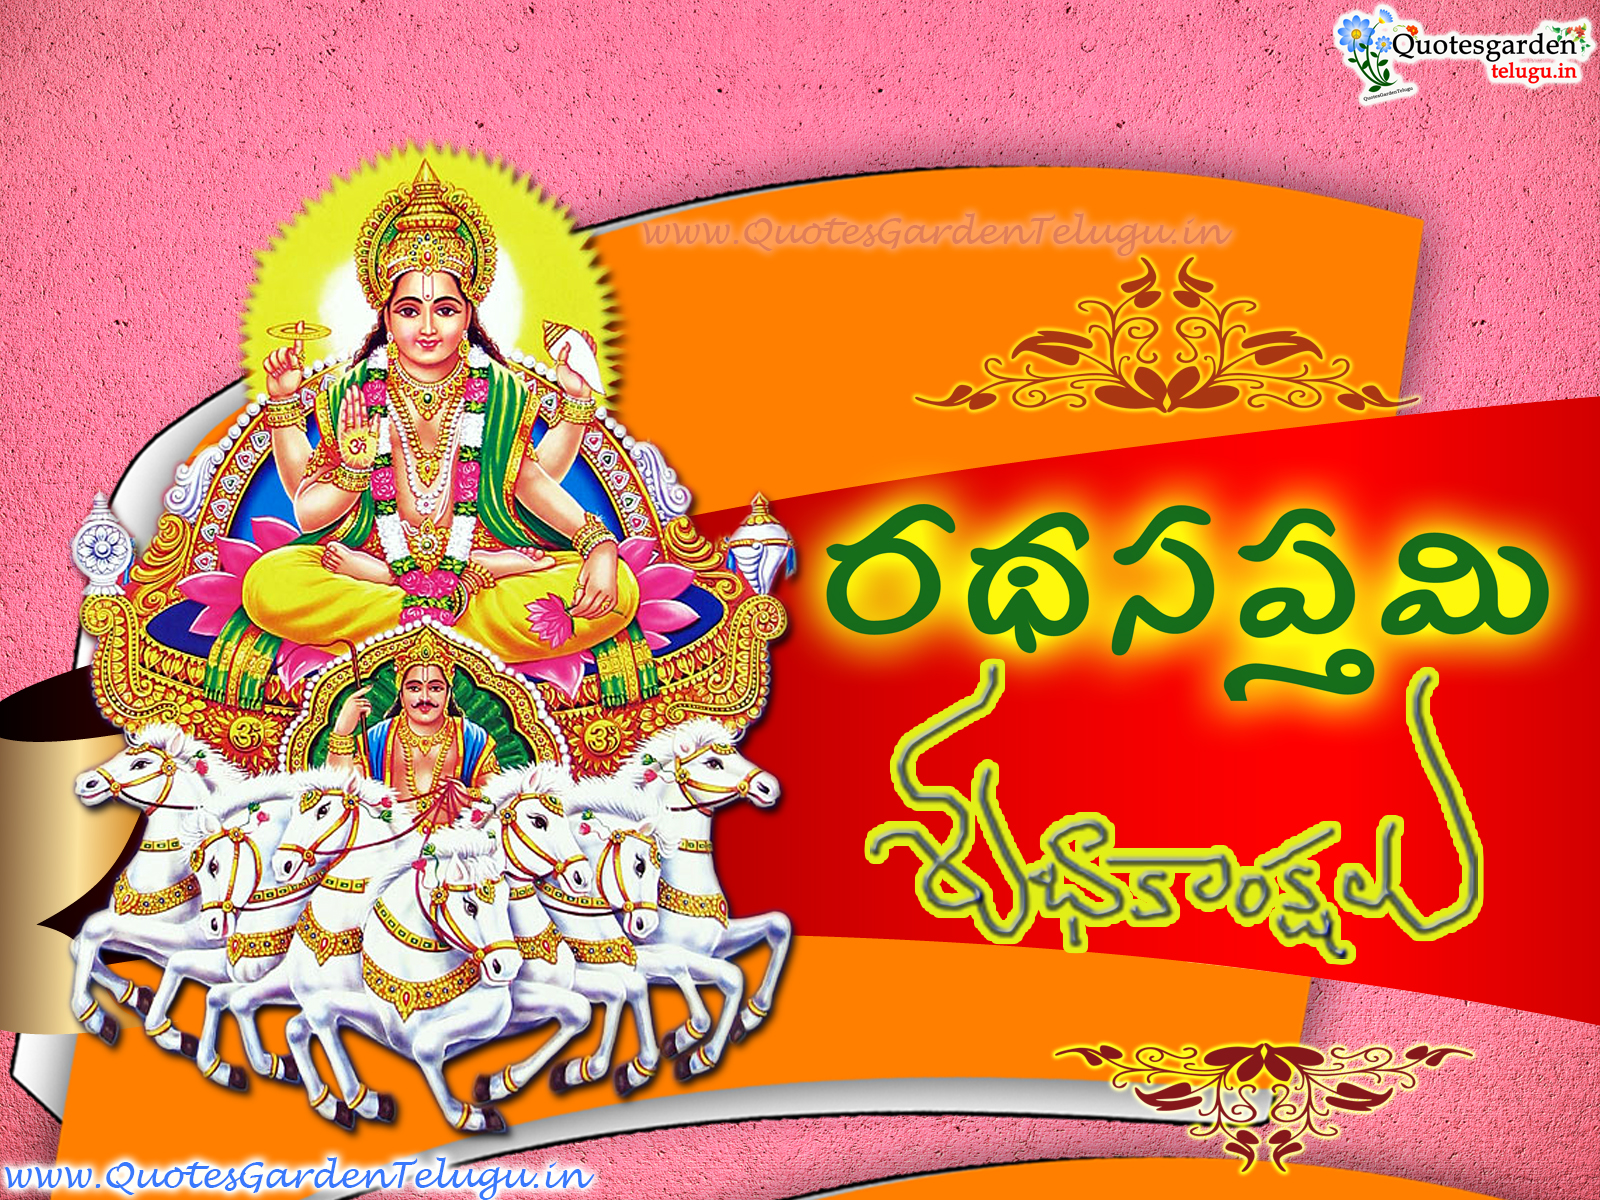 happy rathasapthami greetings wishes images in telugu